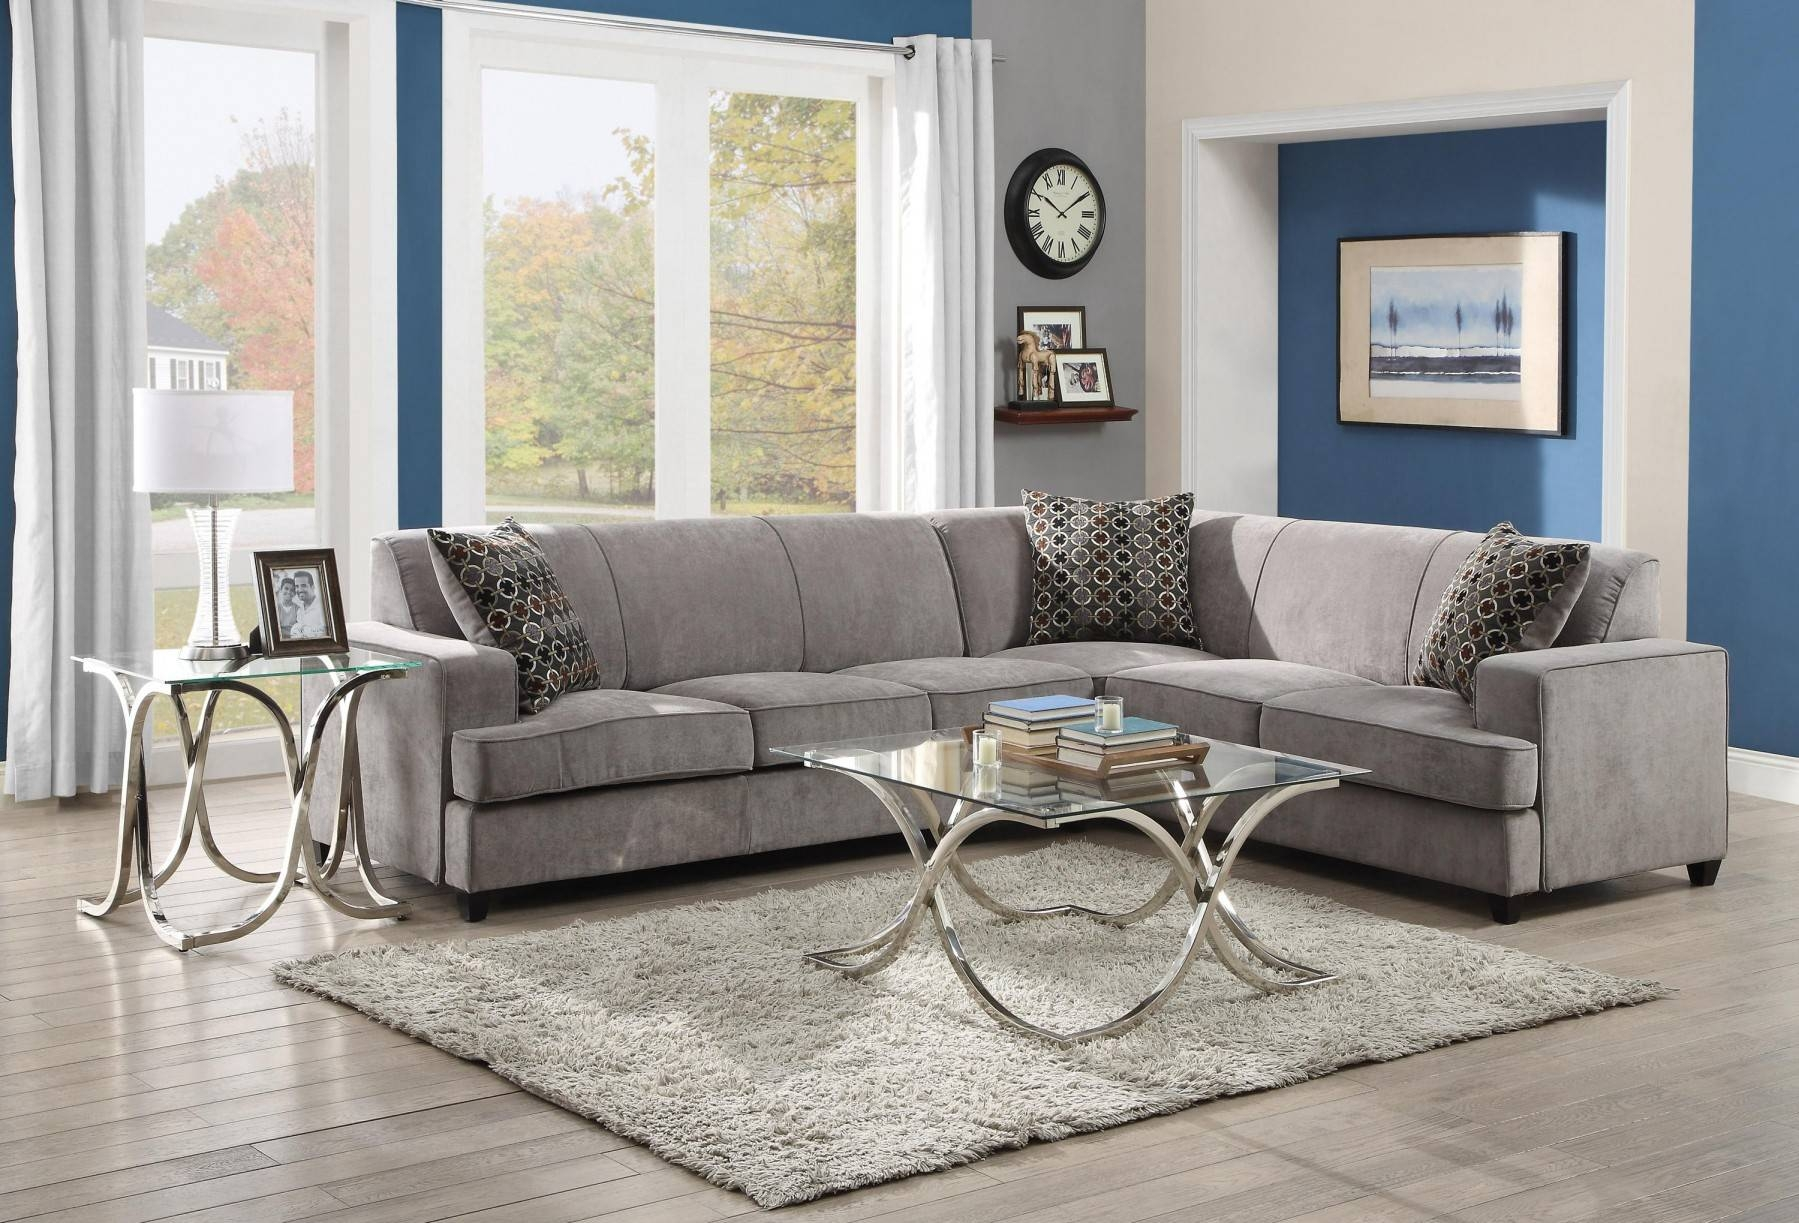 Unique Gray Sectional Sofa For Sale 32 With Additional Sectional Inside  Sectional Sofas Under 600 (